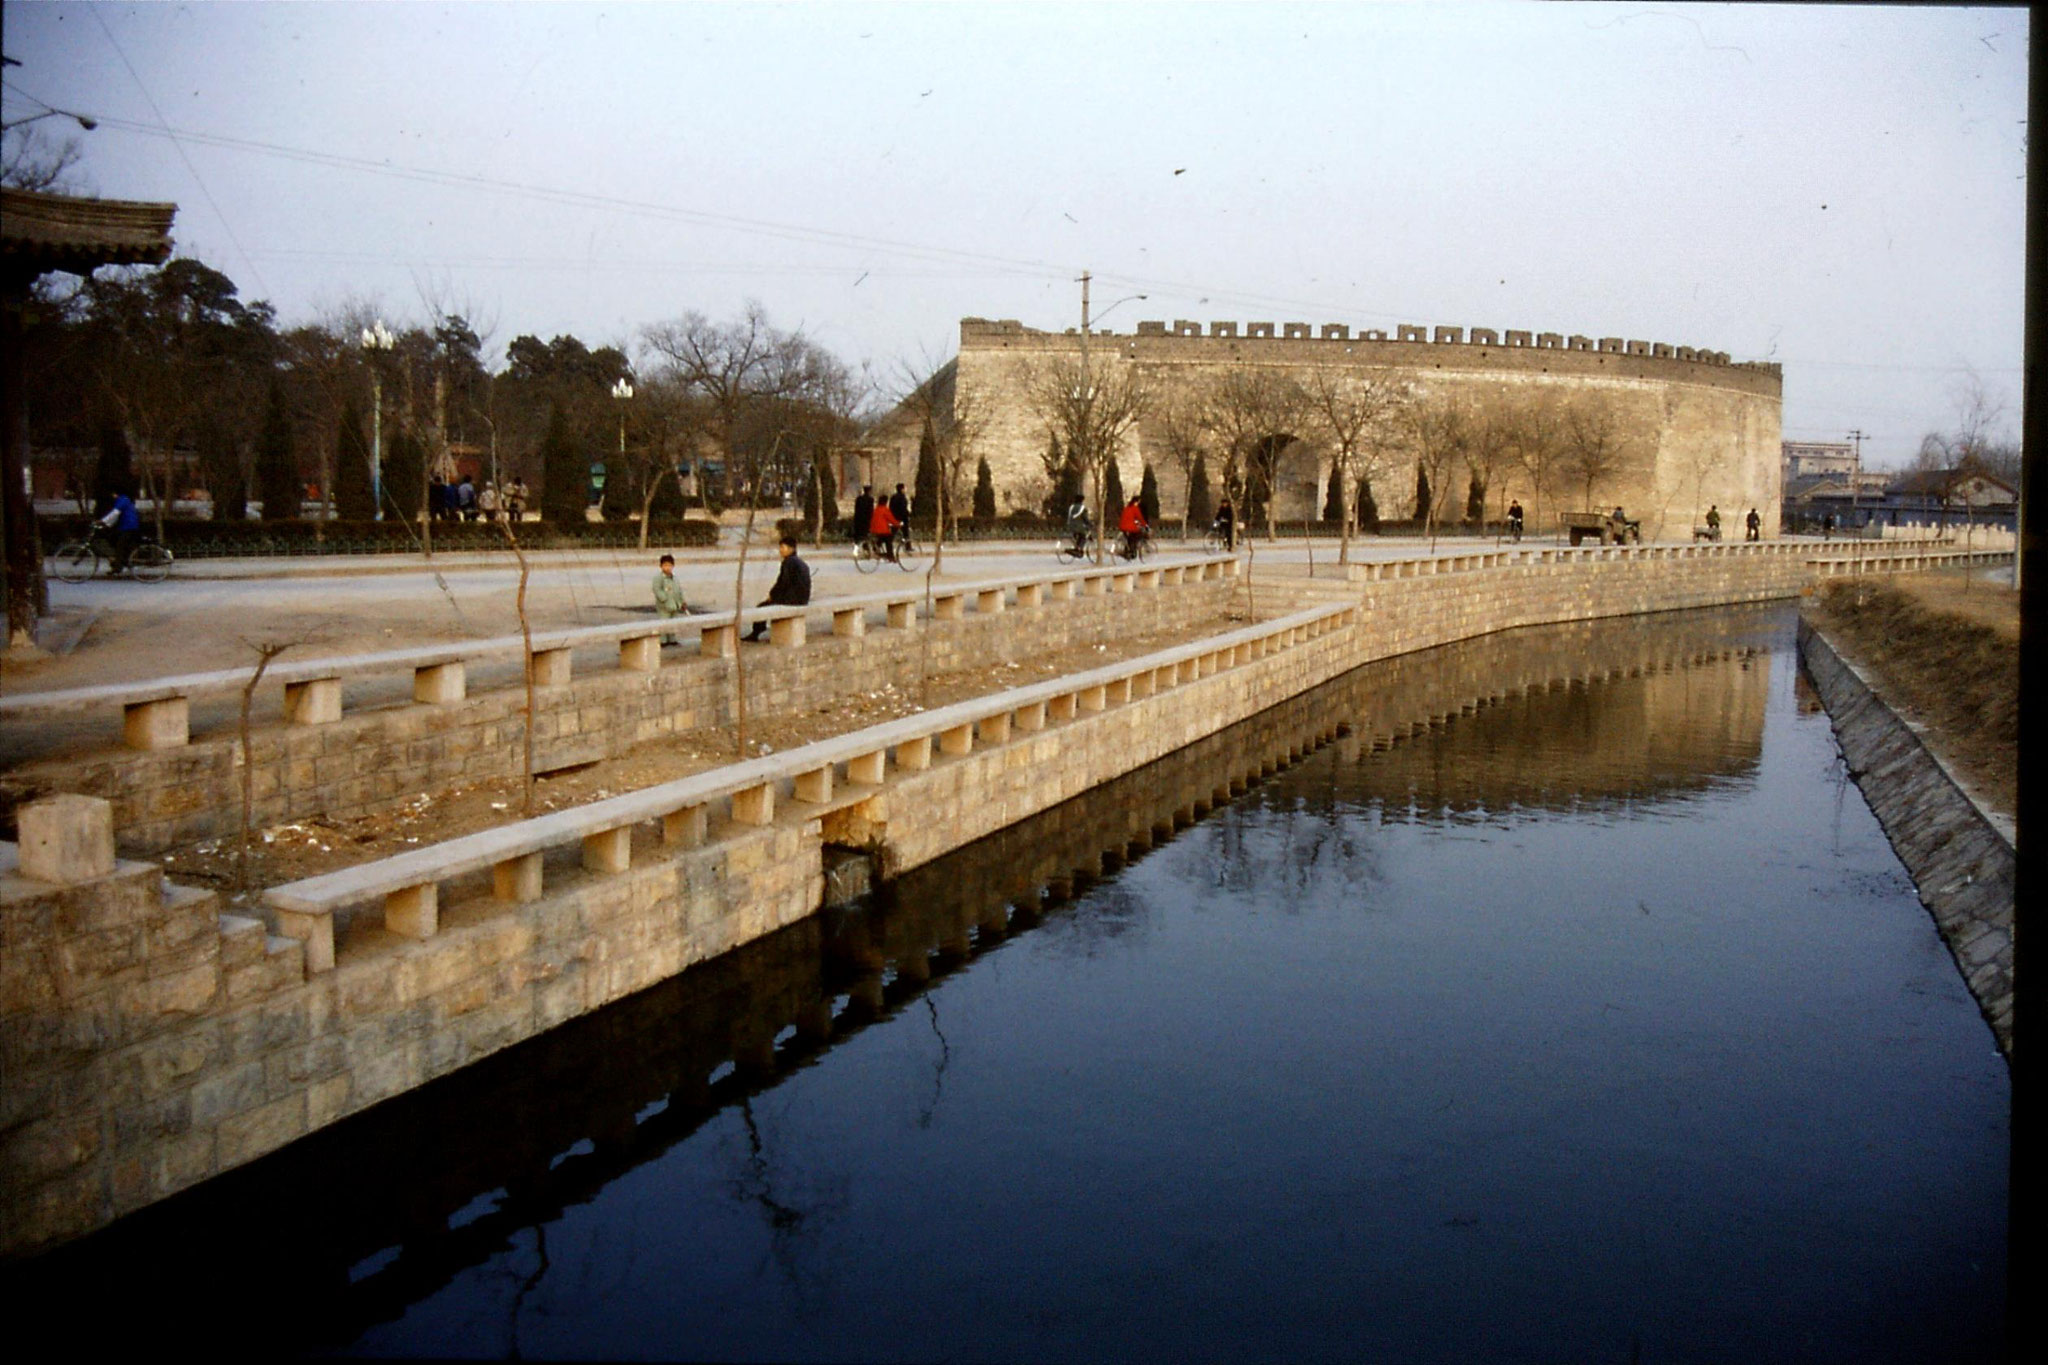 19/2/1989: 28: Qufu city gate and moat at sunset